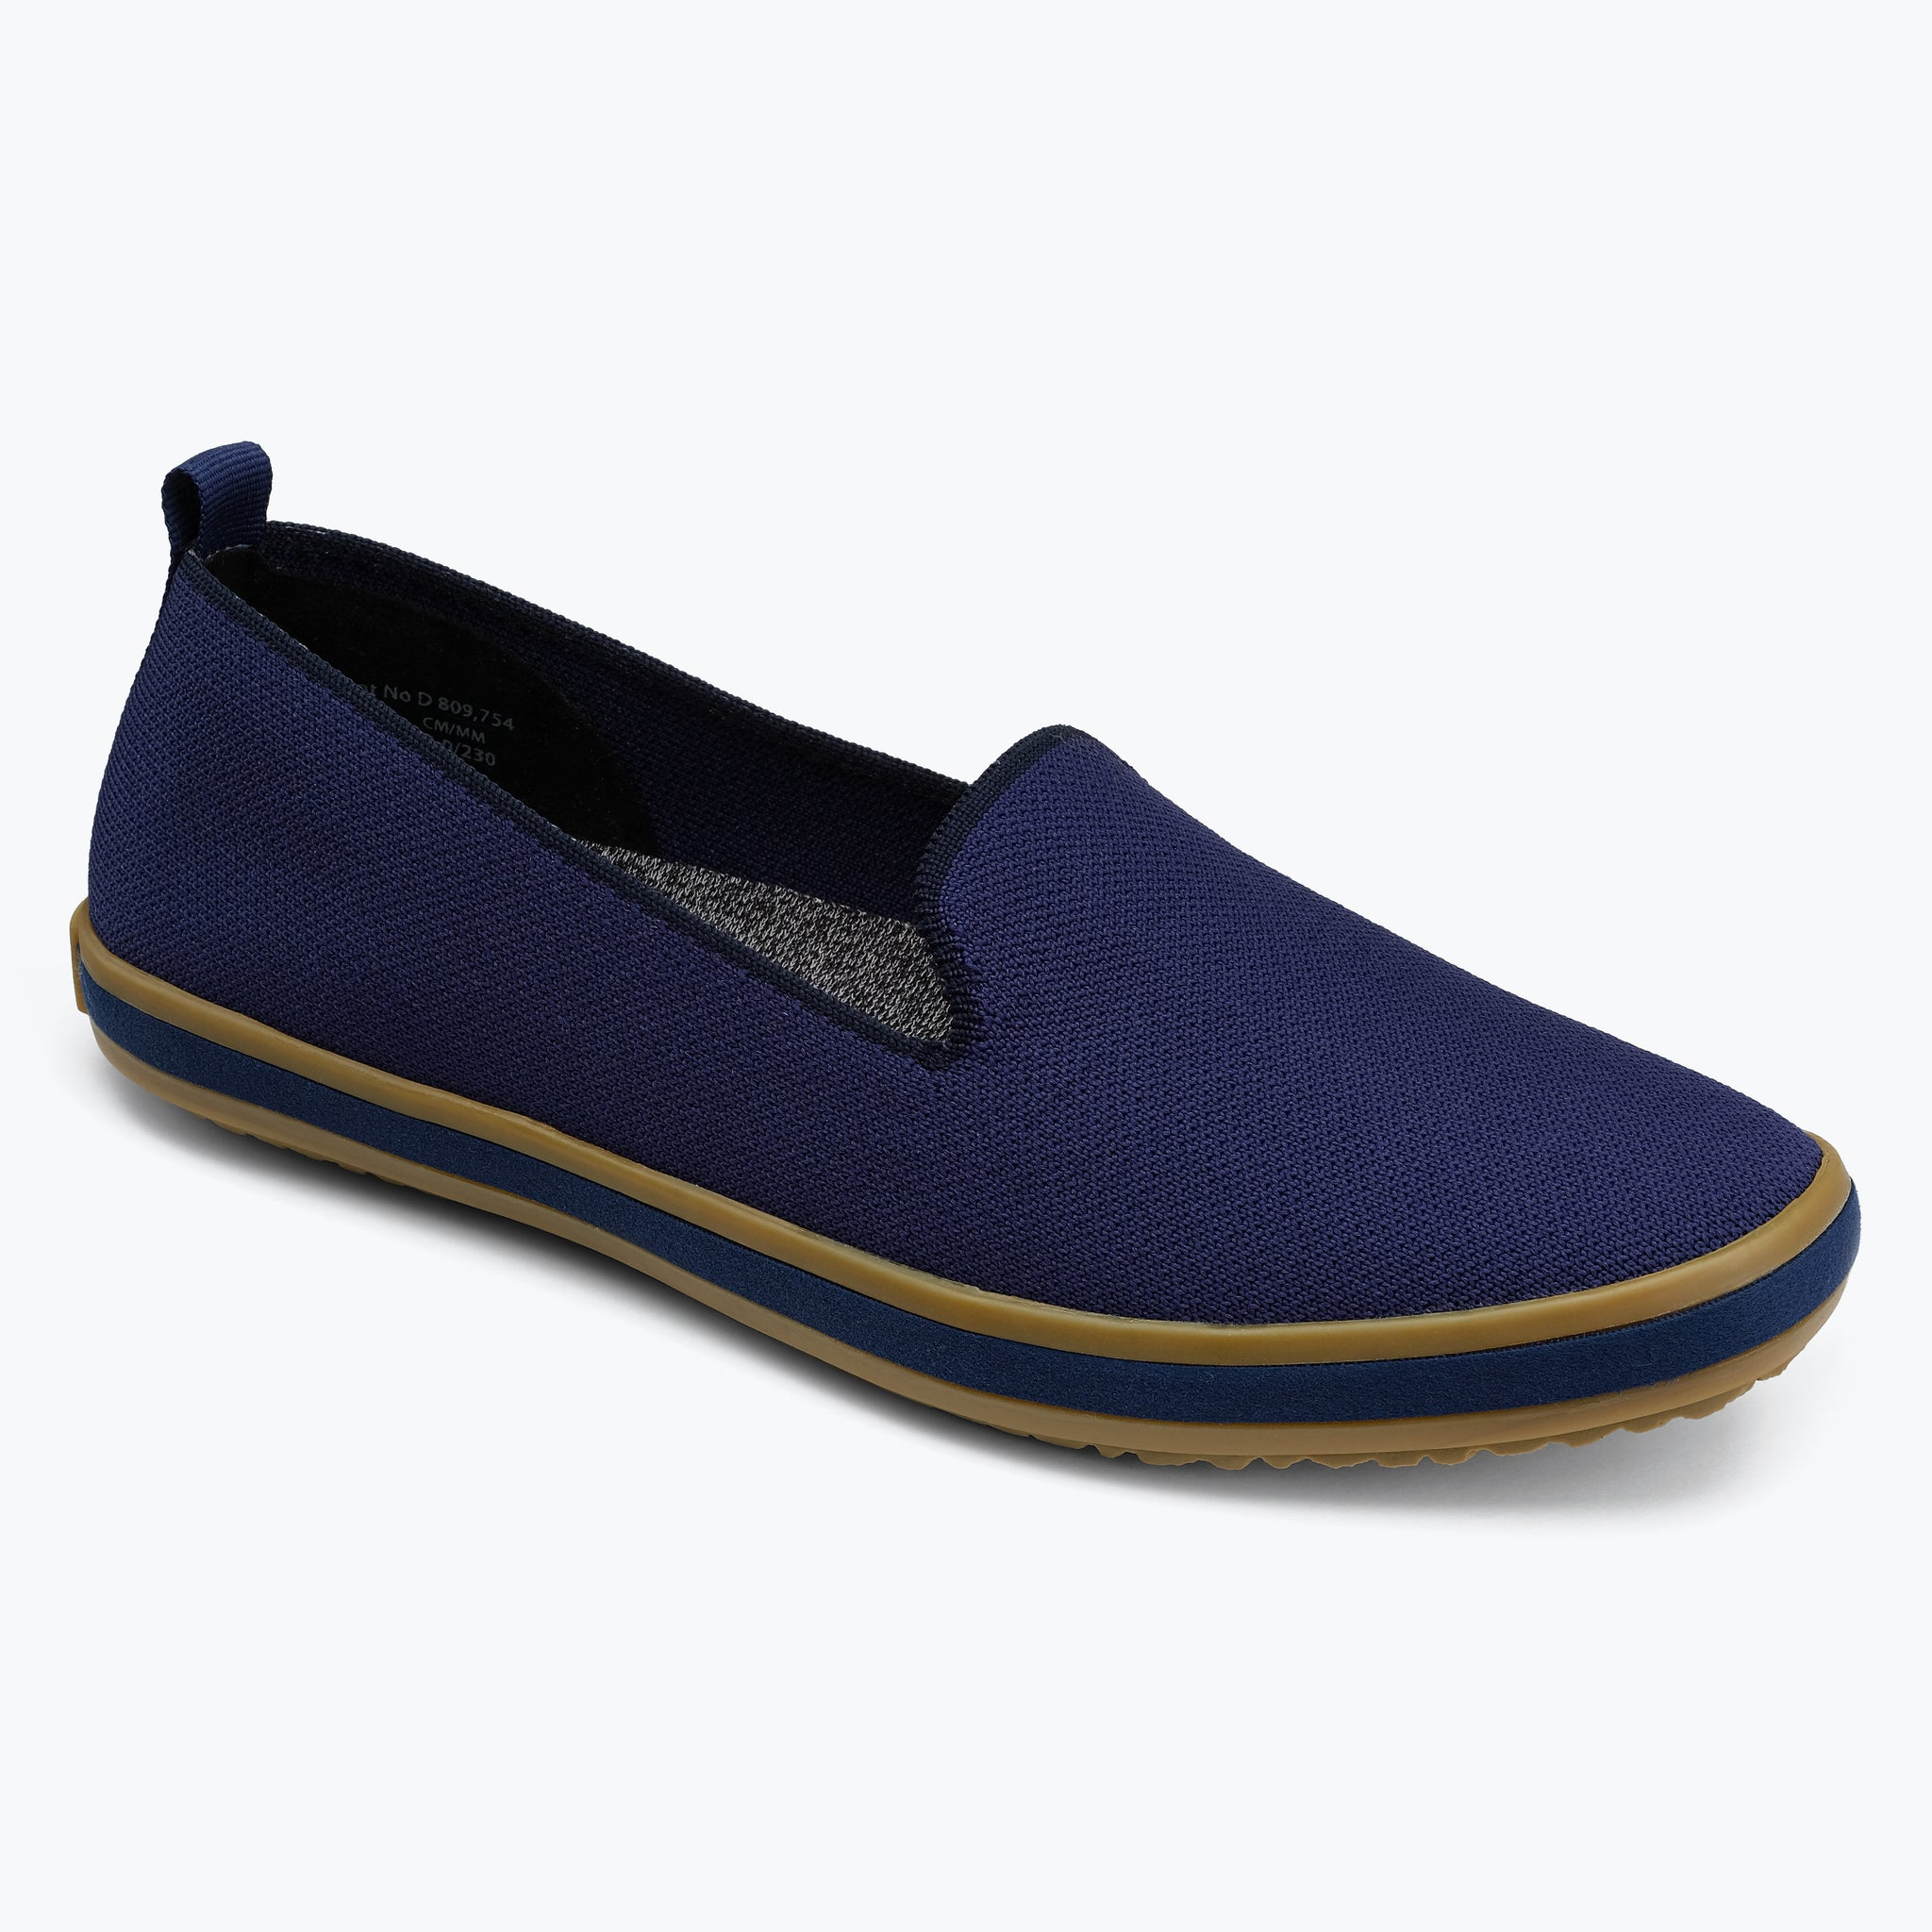 Sutton Knit Slip On - Navy